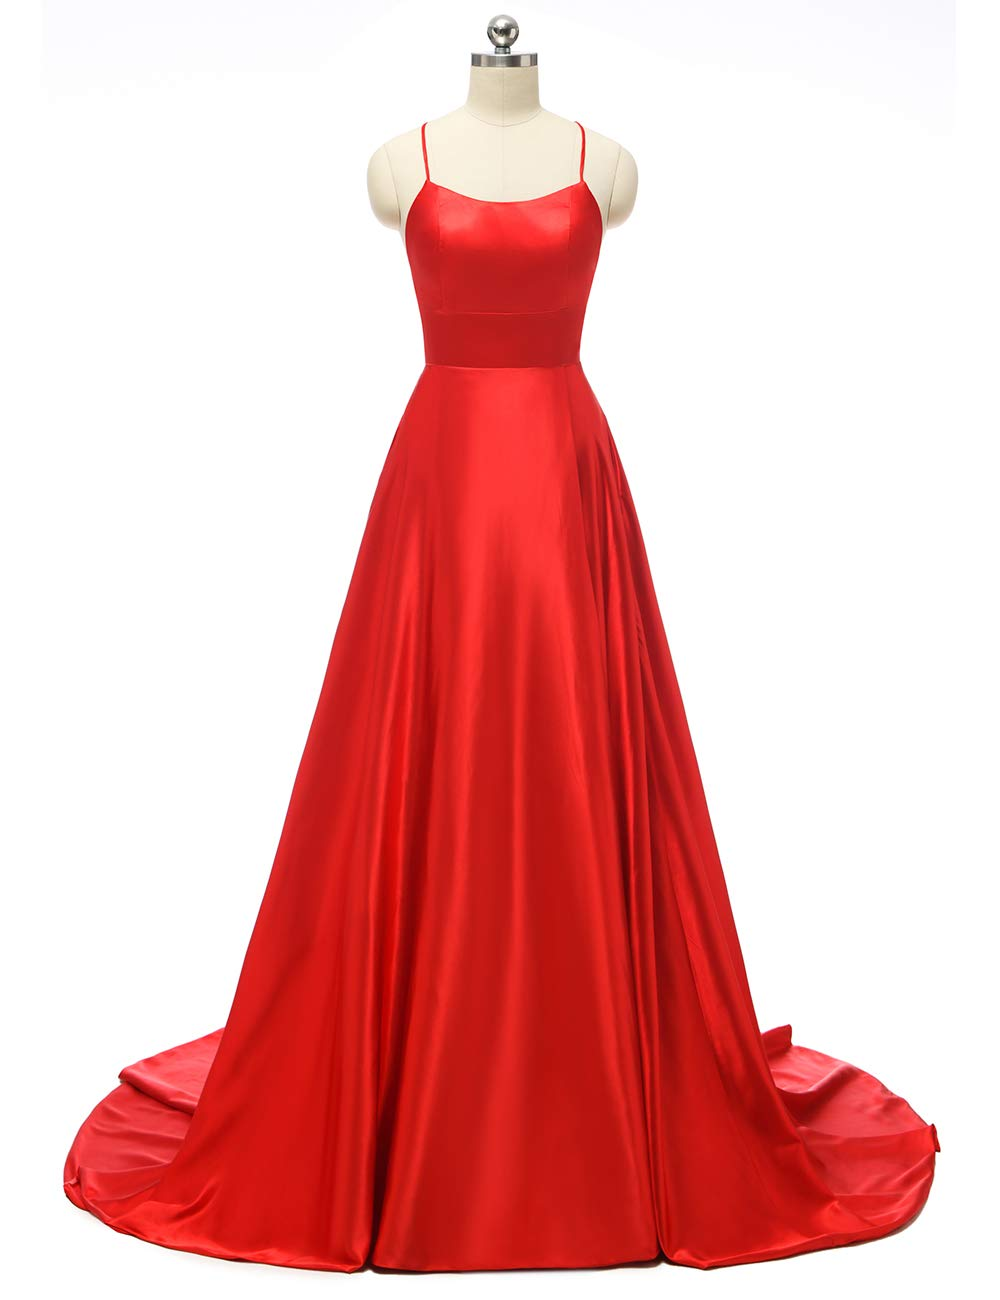 JASY Women's Spaghetti Satin Long Black Side Slit Prom Dresses with Pockets by JASY (Image #3)